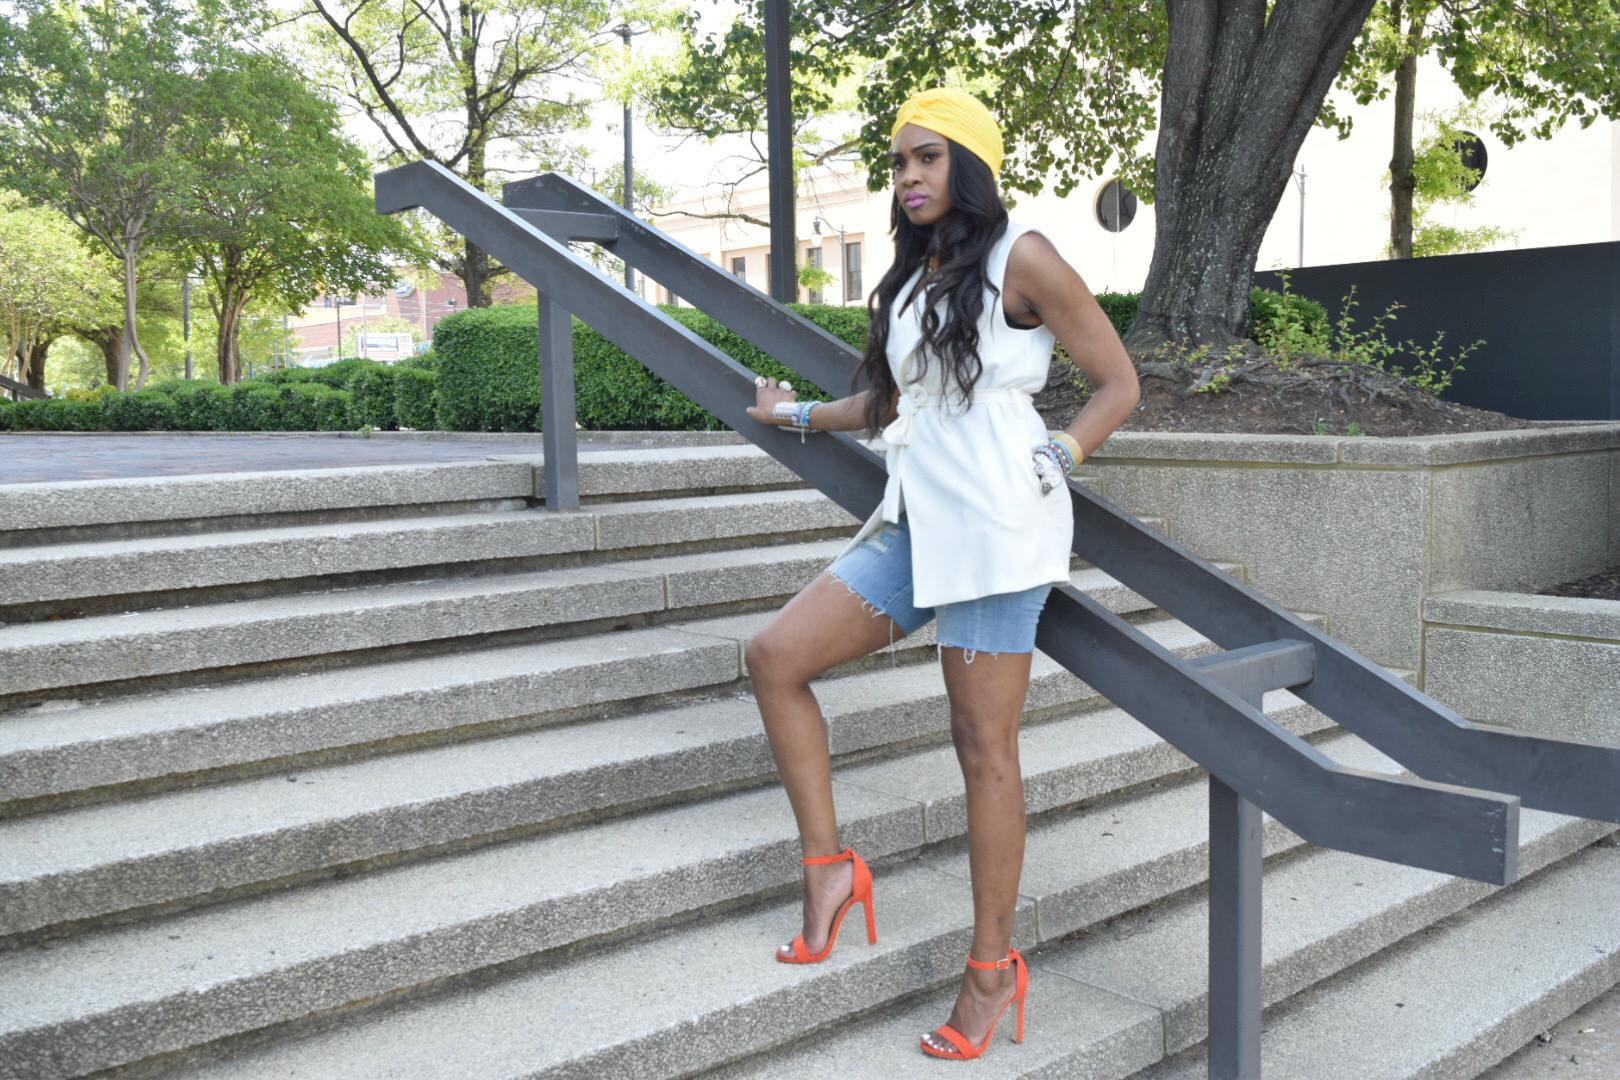 Style-Files-Forever 21-White-Longline Belted-Vest-Mossimo-Denim-Distressed--shorts-Justfab-Orange-heel-kati-sandals-yellow-turban-mirror-sunglasses-oohlalablog-